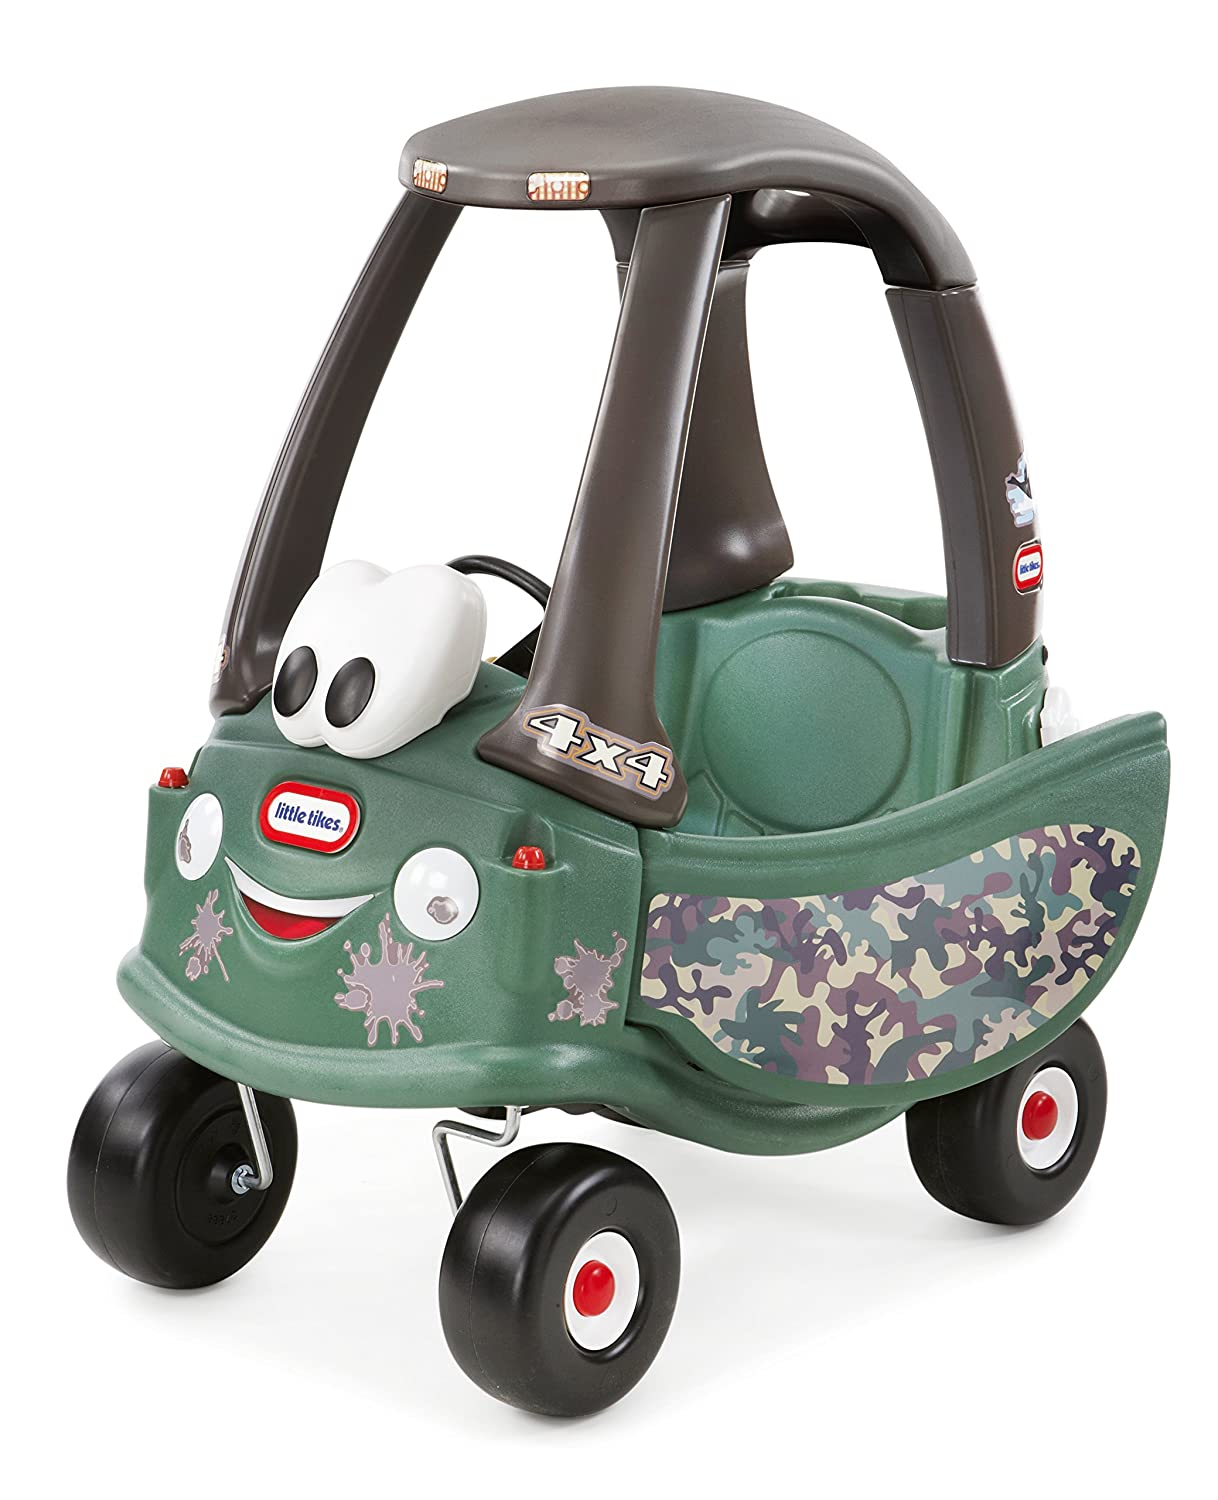 An Image of Little Tikes Cozy Coupe Off-Roader Ride-On, Camo